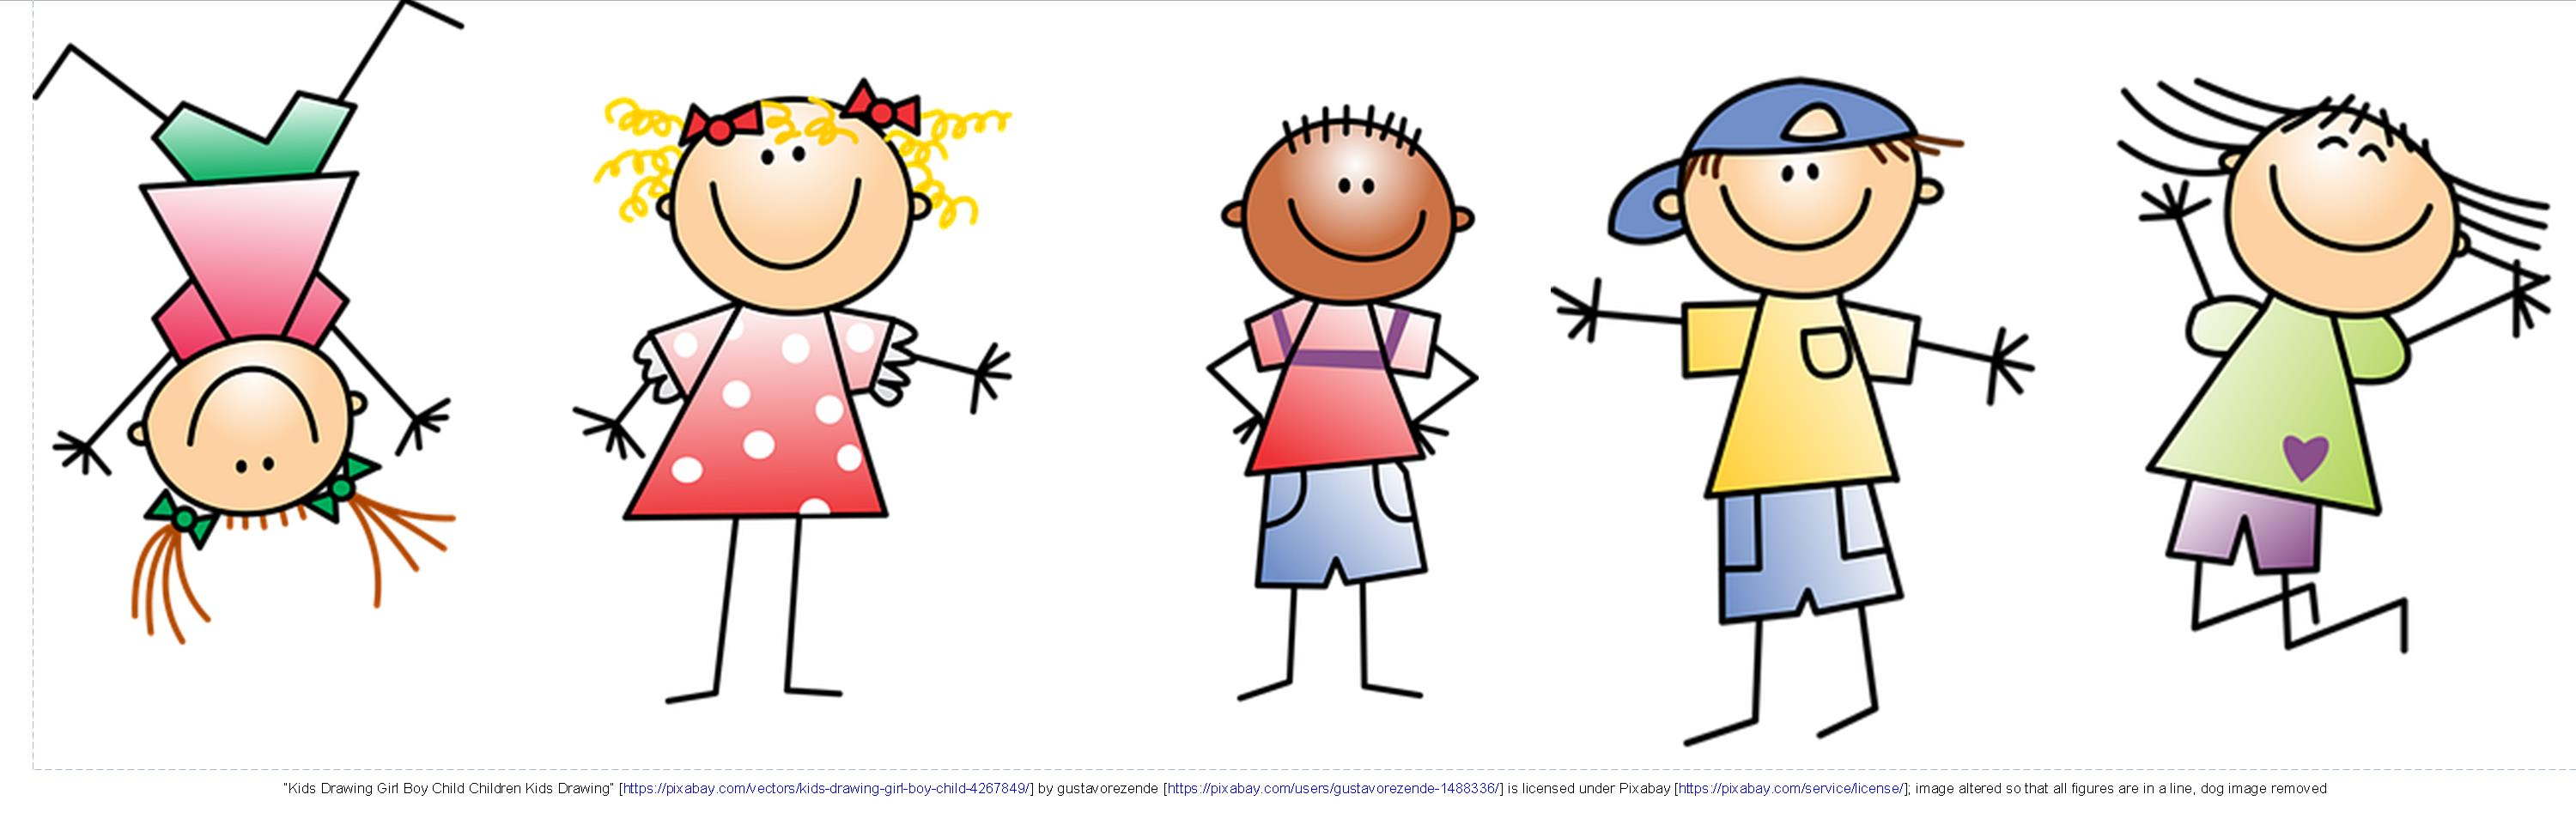 Cartoon illustration of children standing in a line